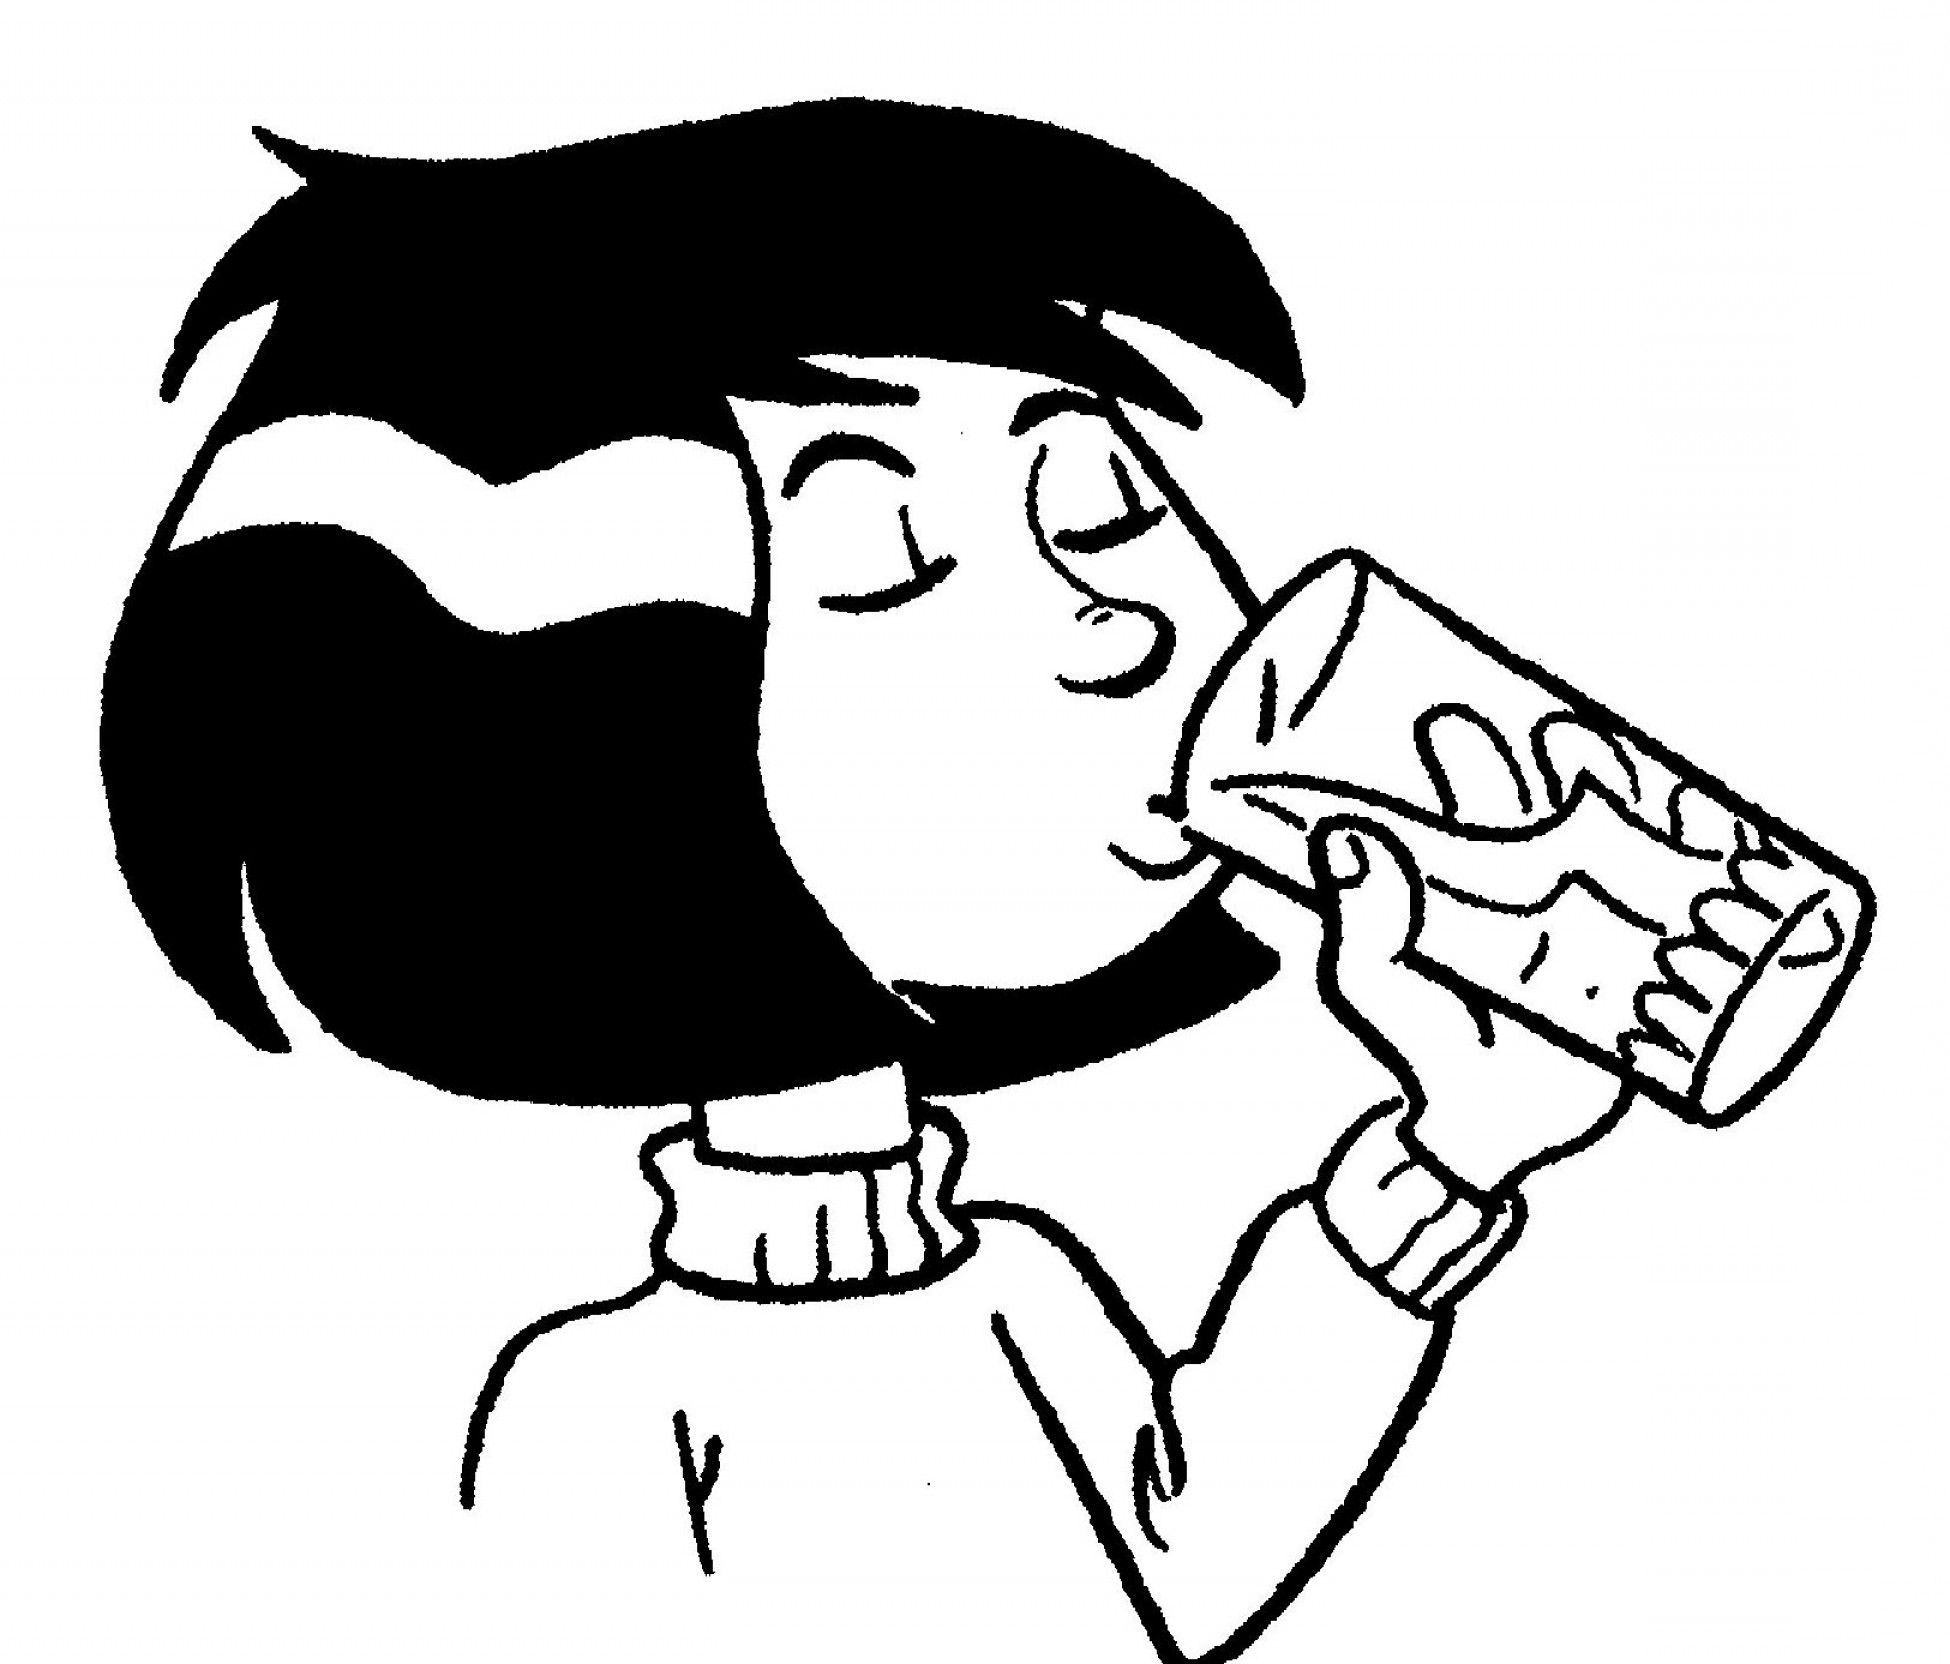 soda logo coloring pages - photo#22